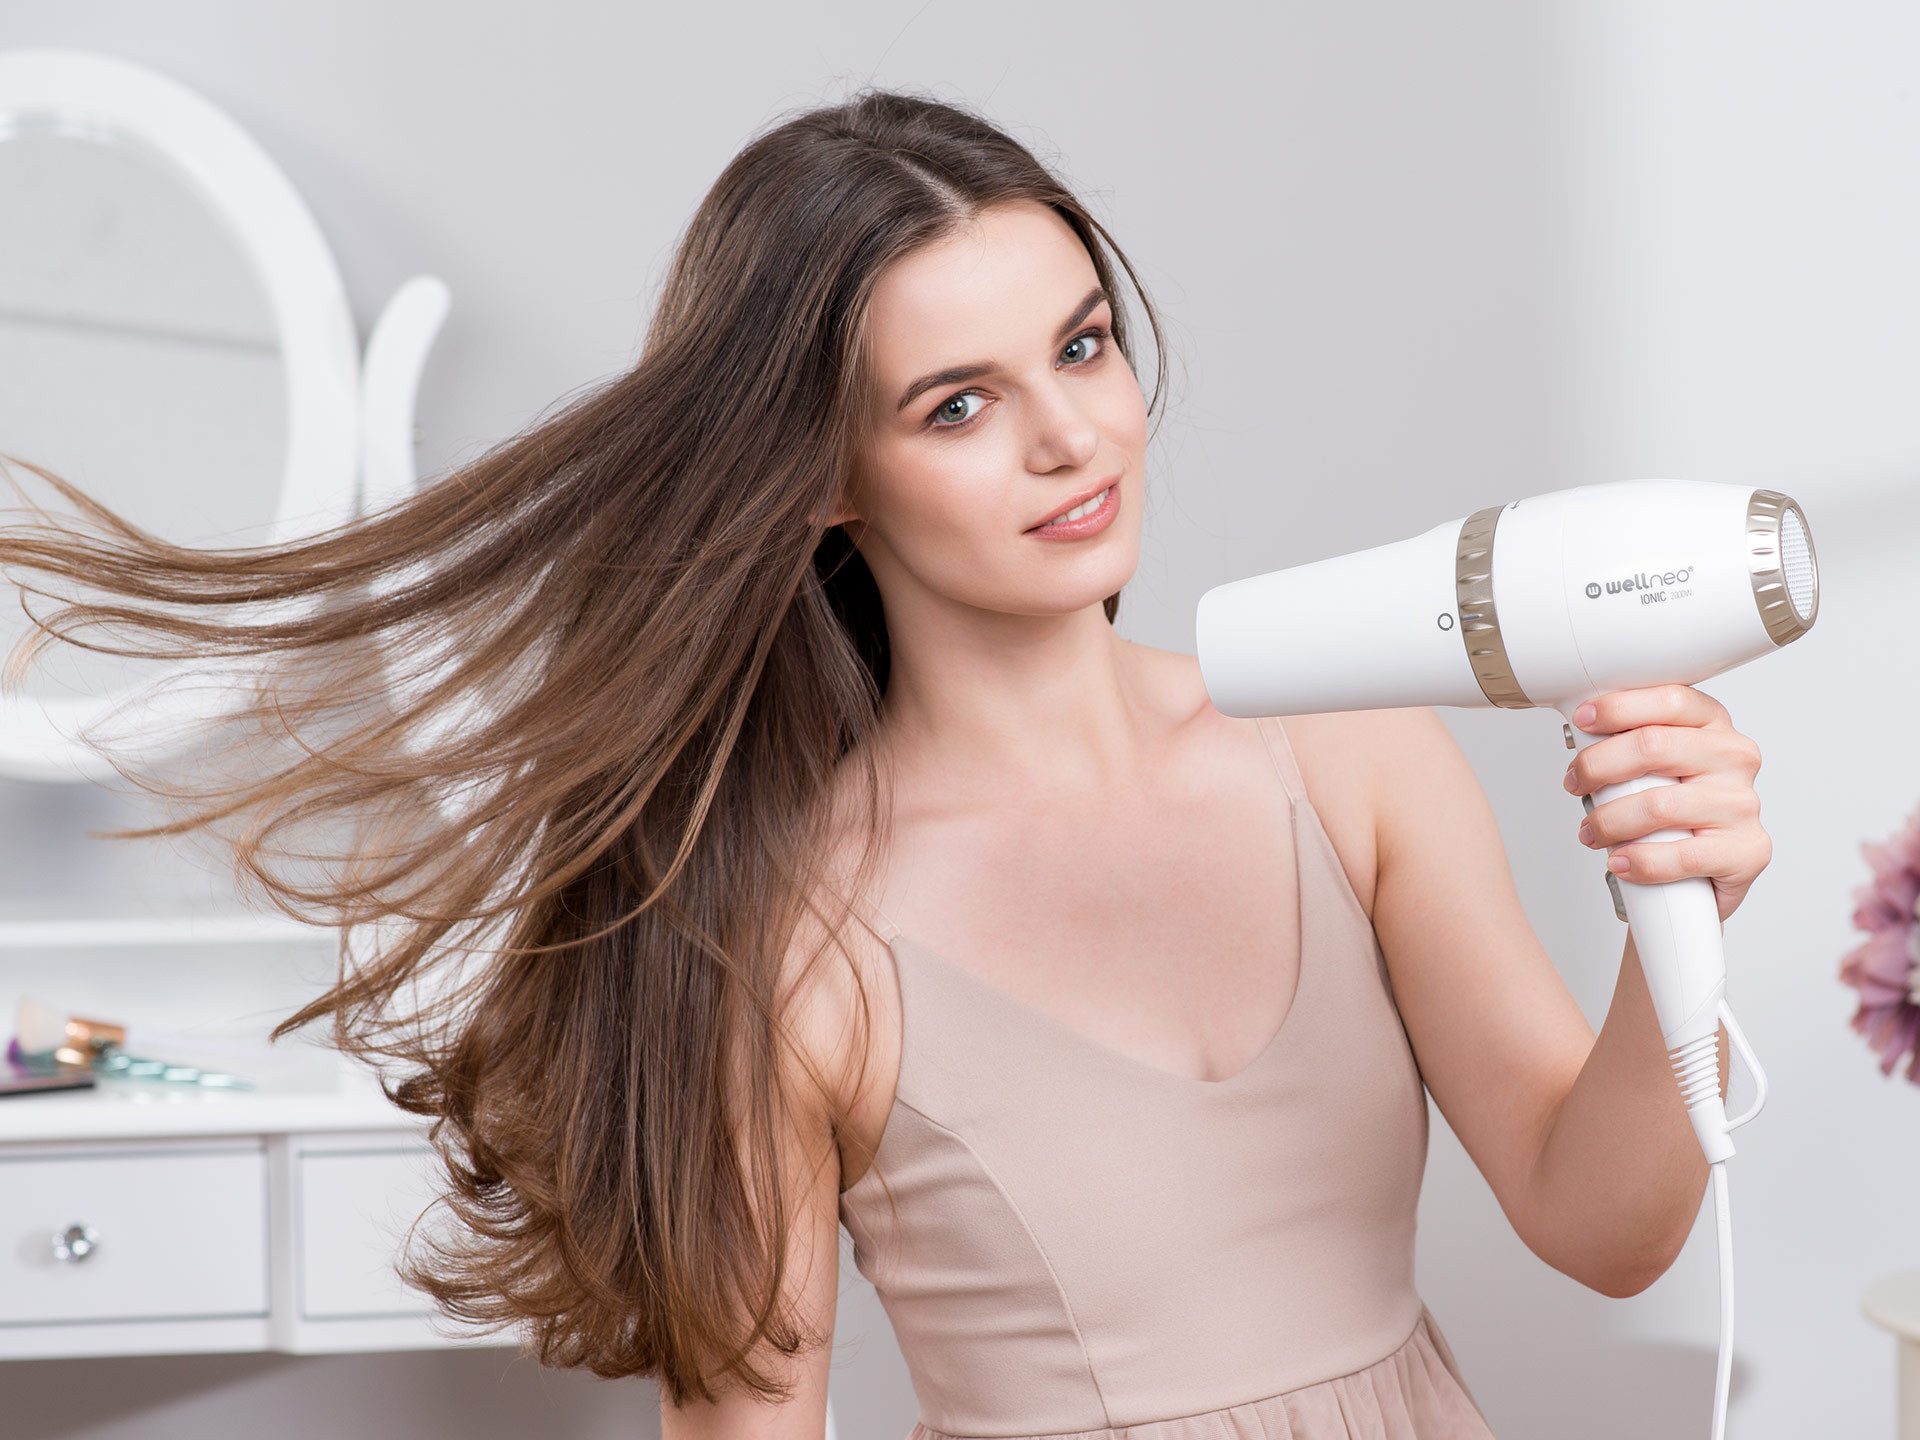 wellneo_2in1_airpro_hair_dryer_02